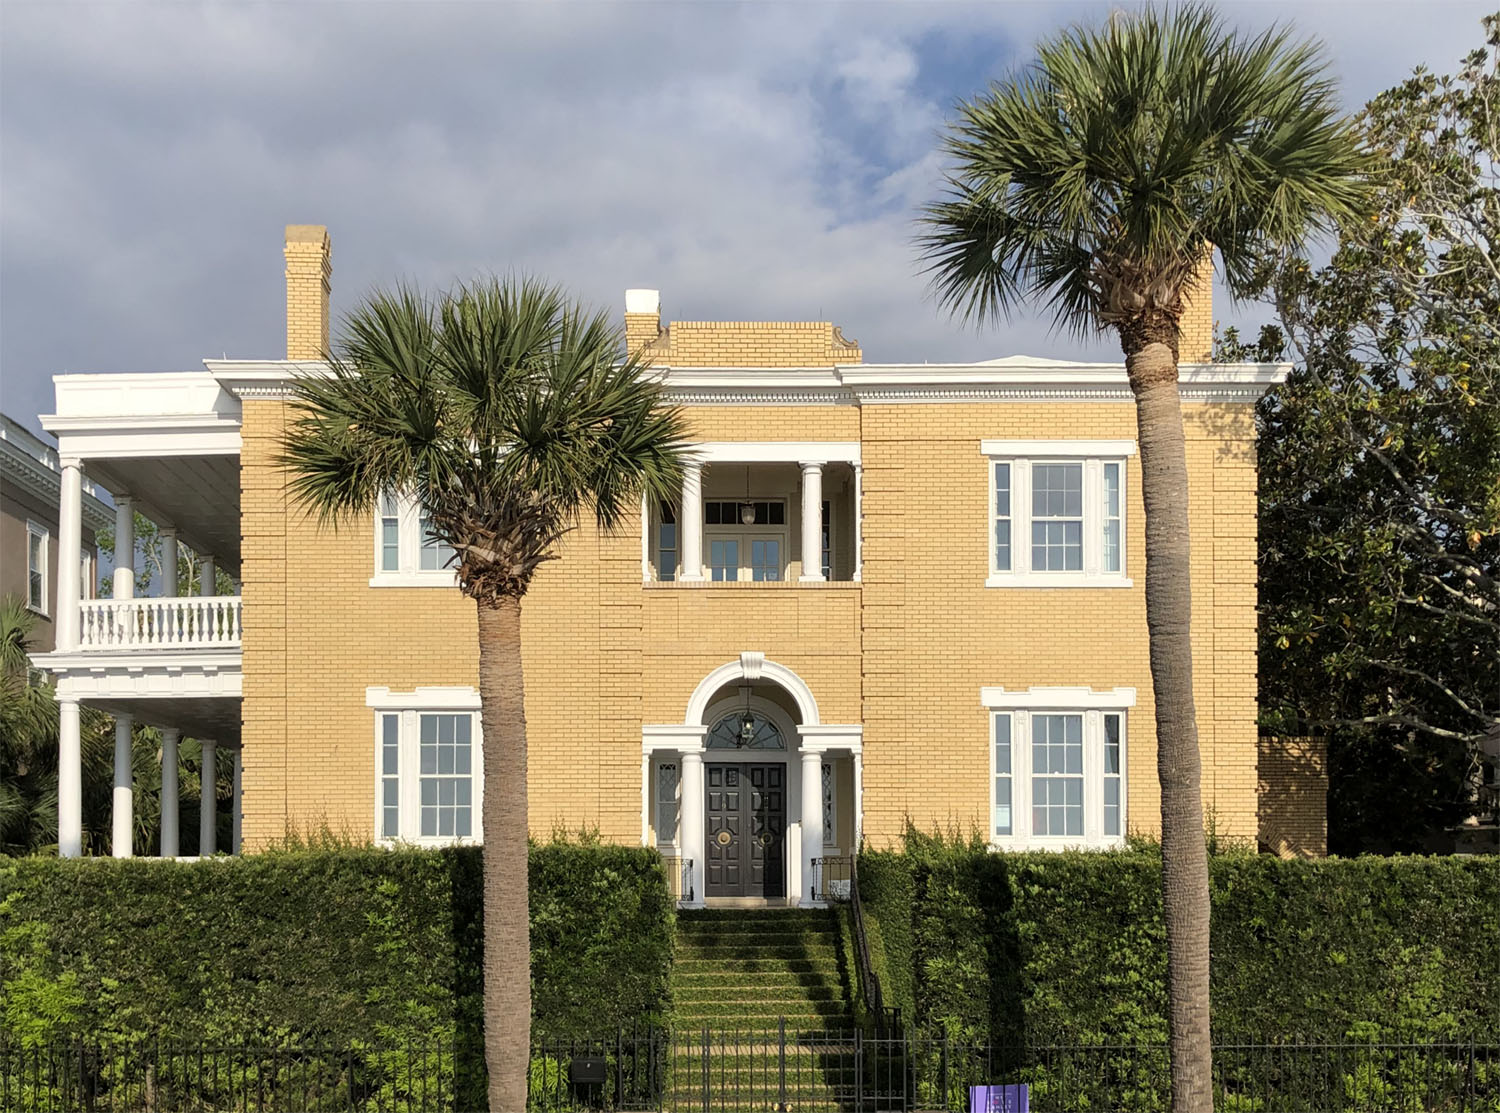 Julius M. Visanka House, Charleston, SC